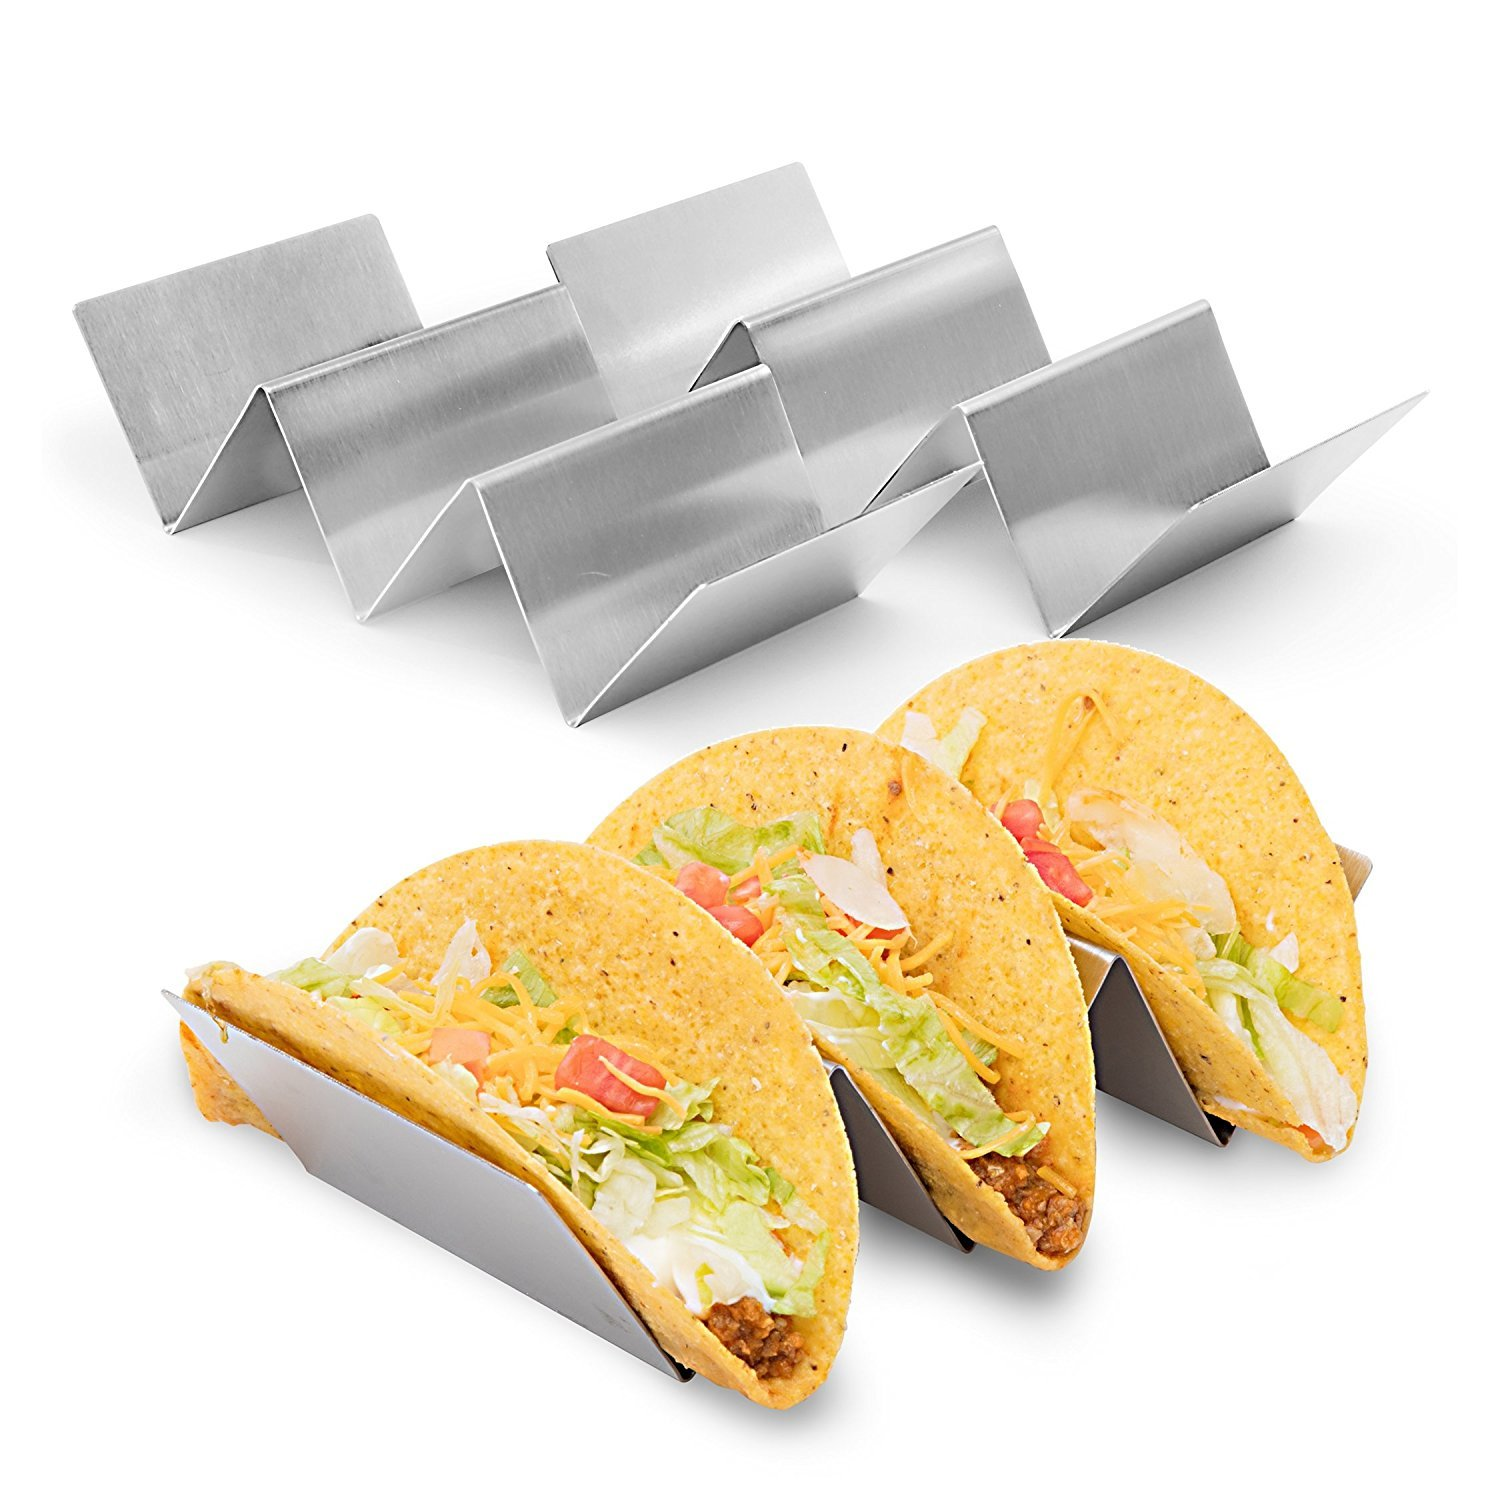 SODIAL 2 pcs - Stylish Stainless Steel Taco Holder Stand, Taco Truck Tray Style, Rack Holds Up to 3 Tacos Each, Oven Safe for Baking